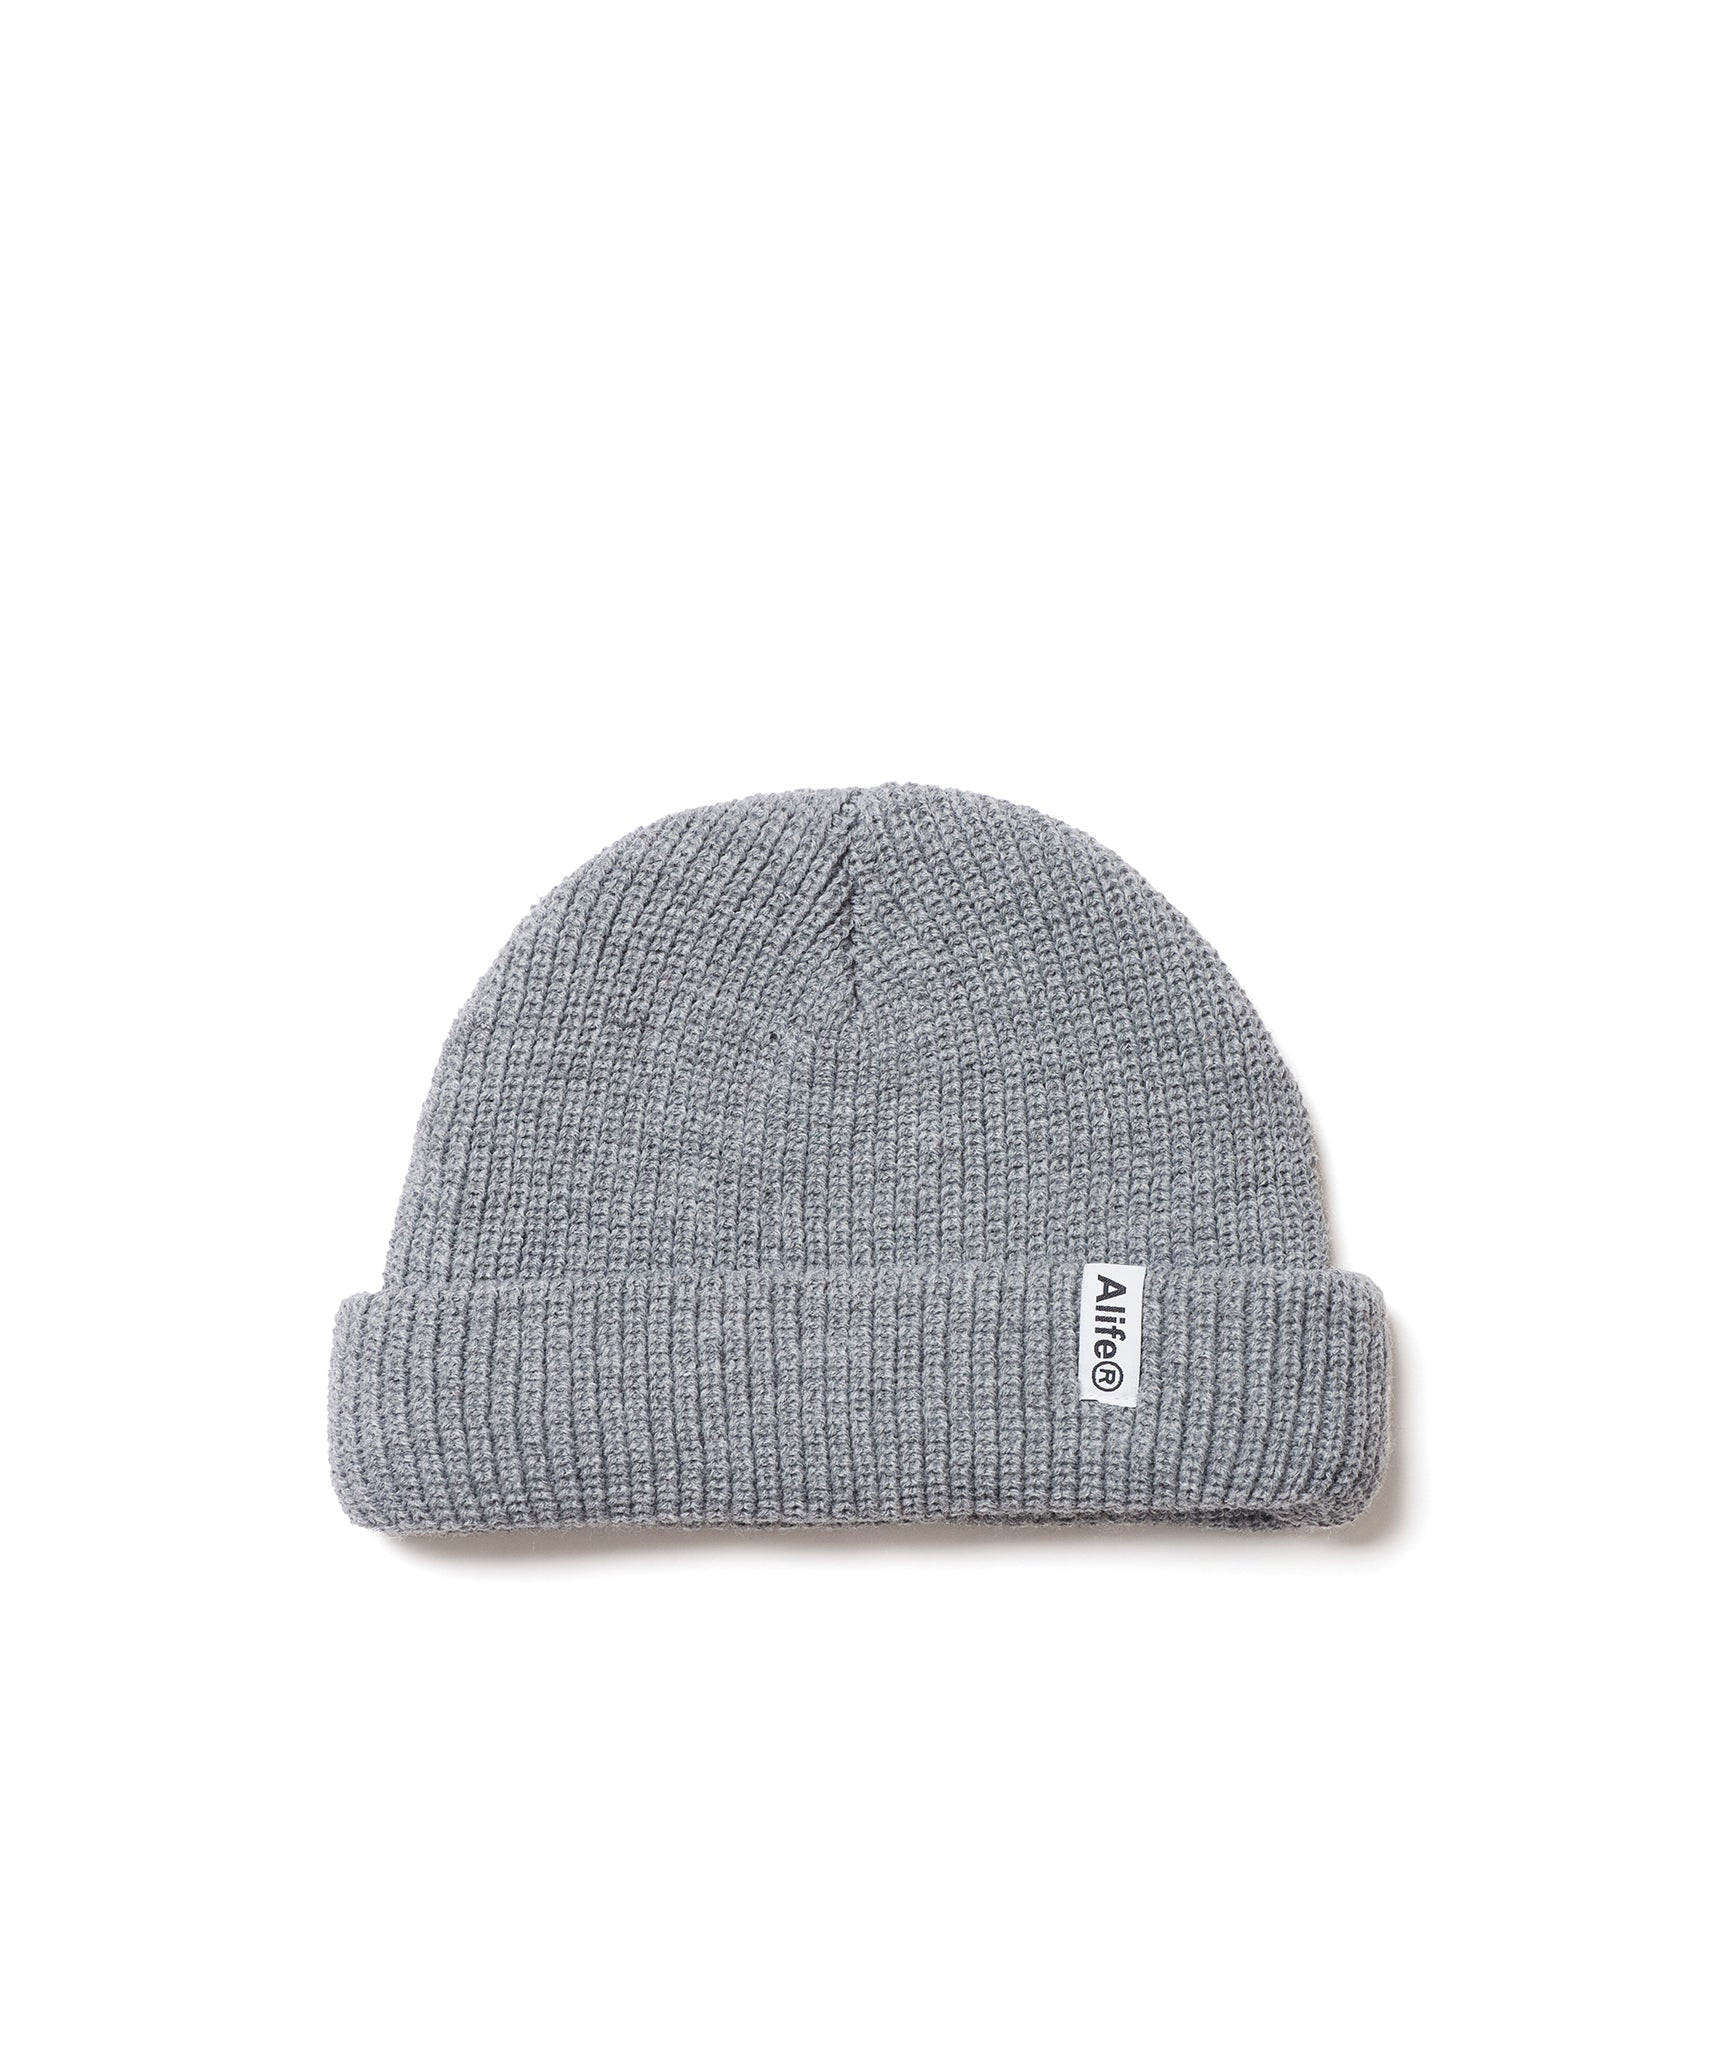 Alife Registered Beanie